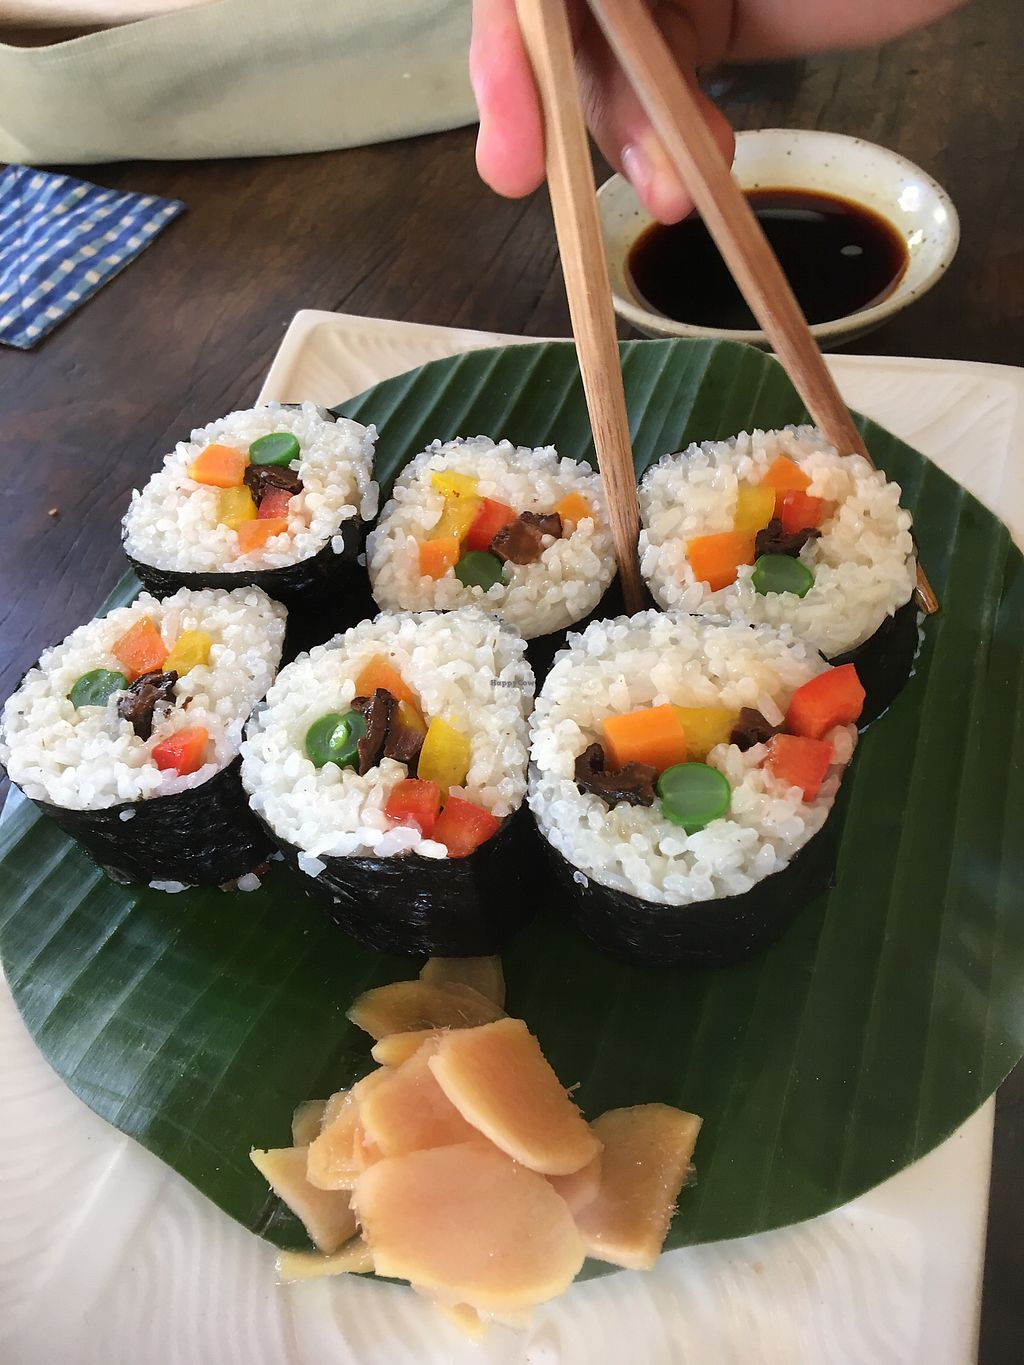 "Photo of Cafe Beras  by <a href=""/members/profile/allyandlouis"">allyandlouis</a> <br/>Delicious big sushi  <br/> March 22, 2018  - <a href='/contact/abuse/image/88838/374144'>Report</a>"